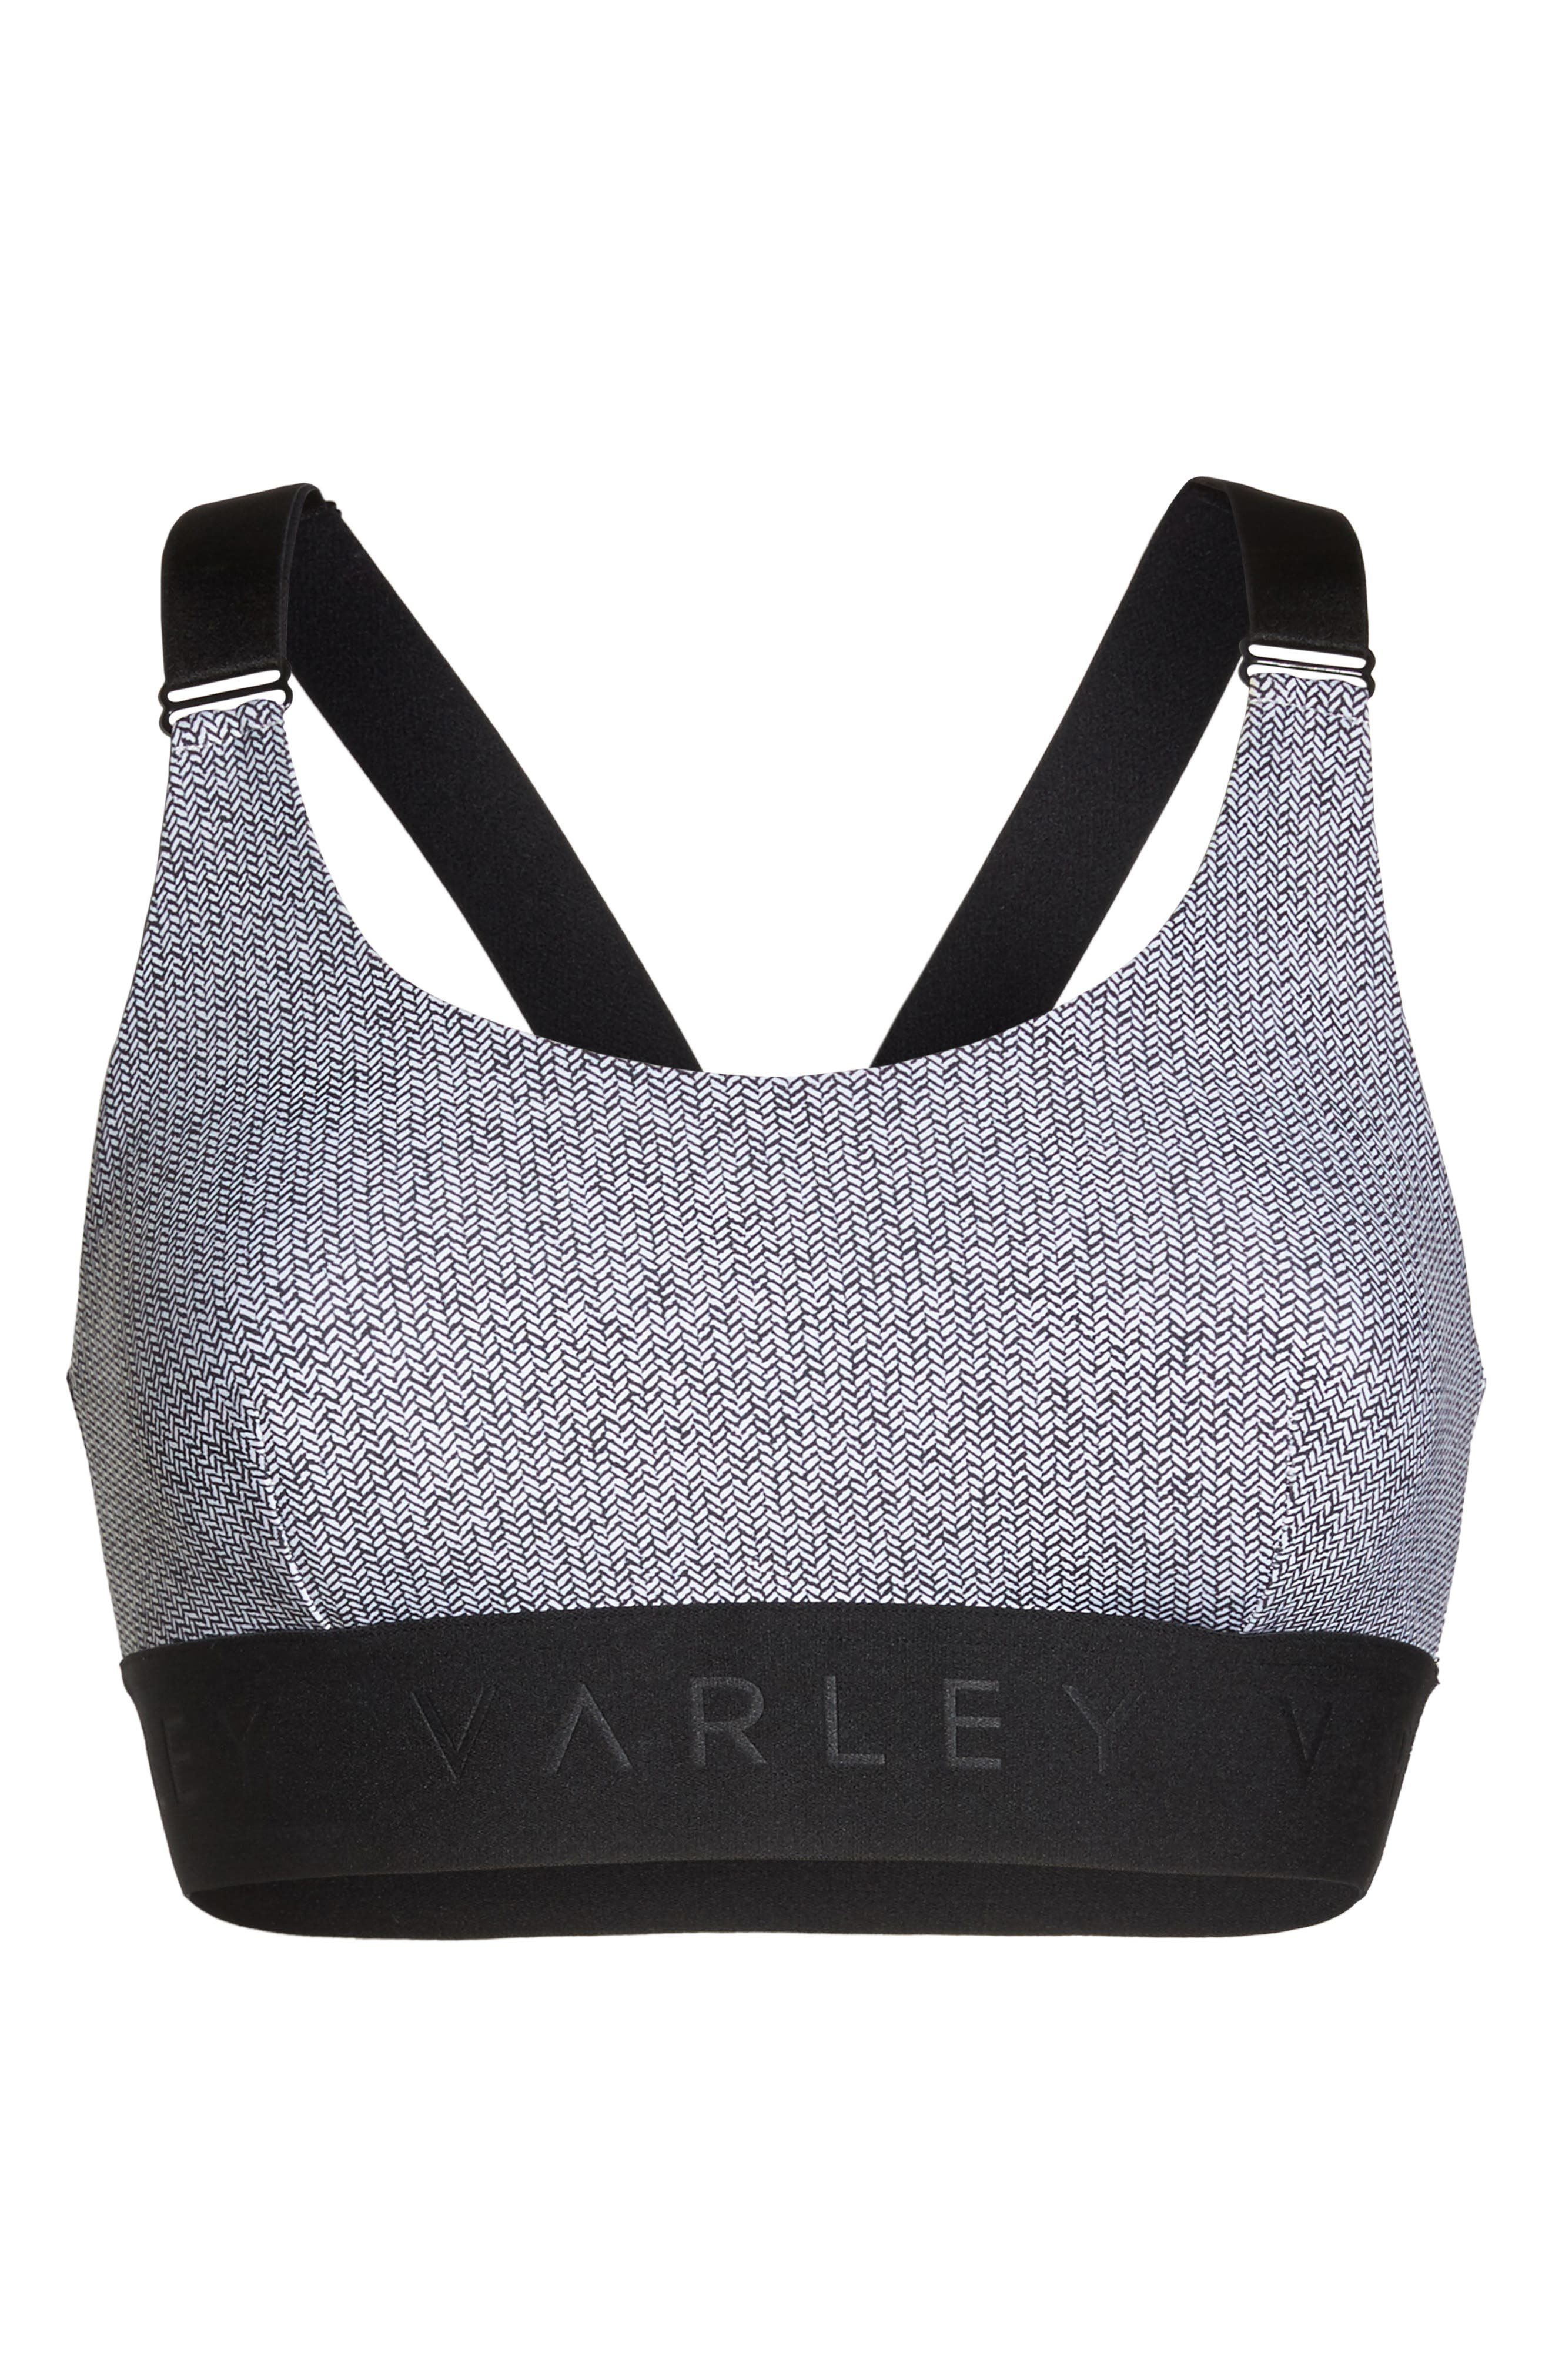 Gale Sports Bra,                             Alternate thumbnail 7, color,                             001